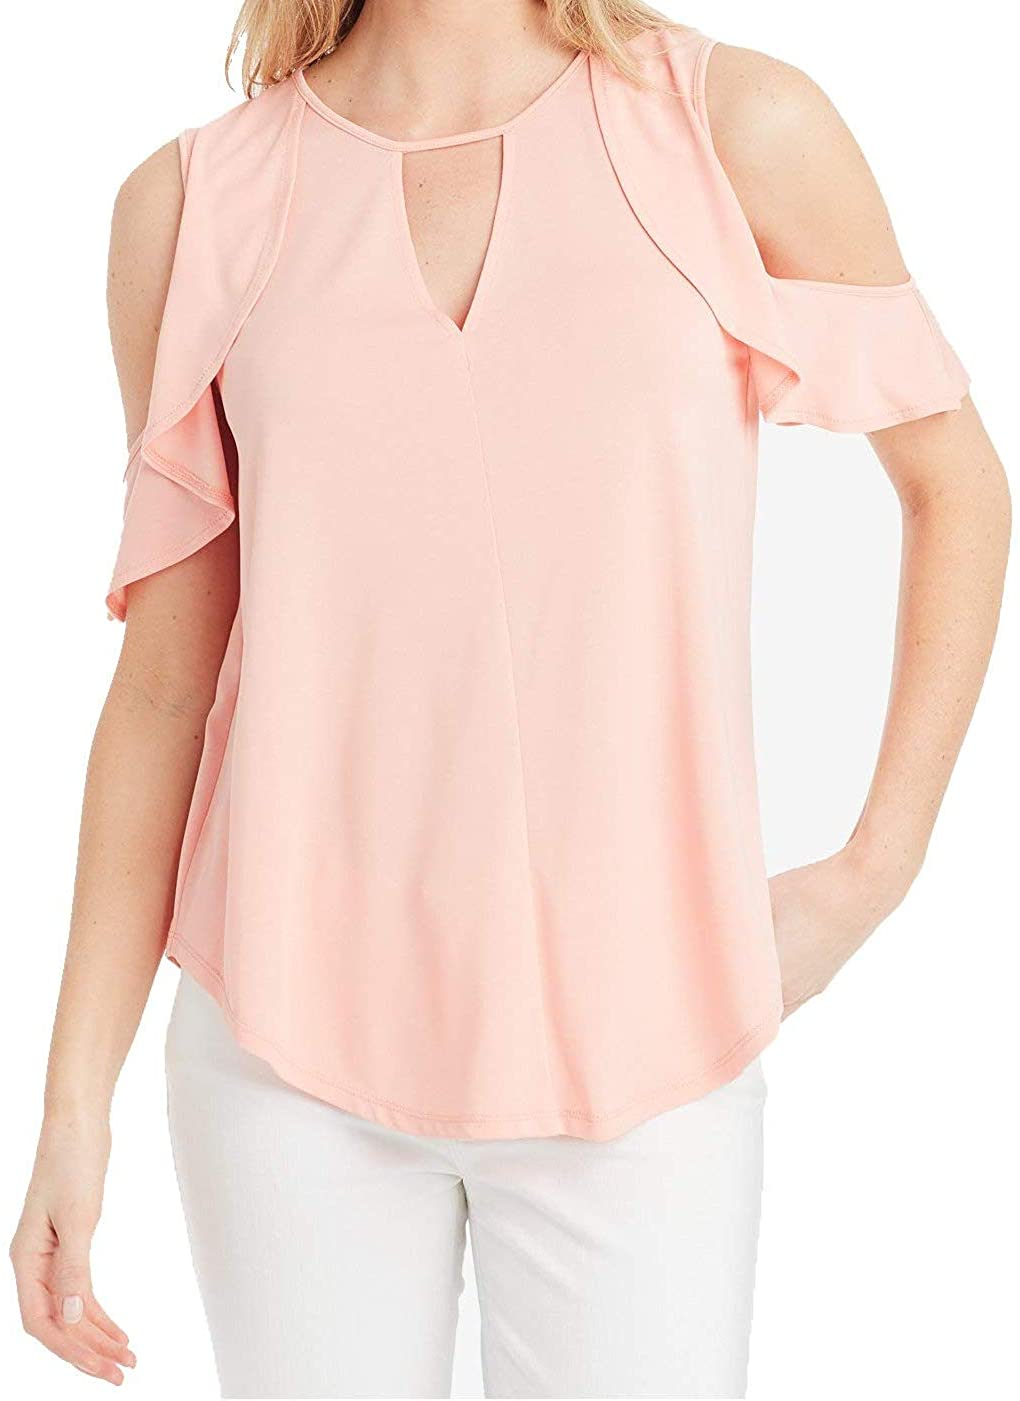 Jessica Simpson Womens Pearlina Cold Shoulder Ruffled Pullover Top